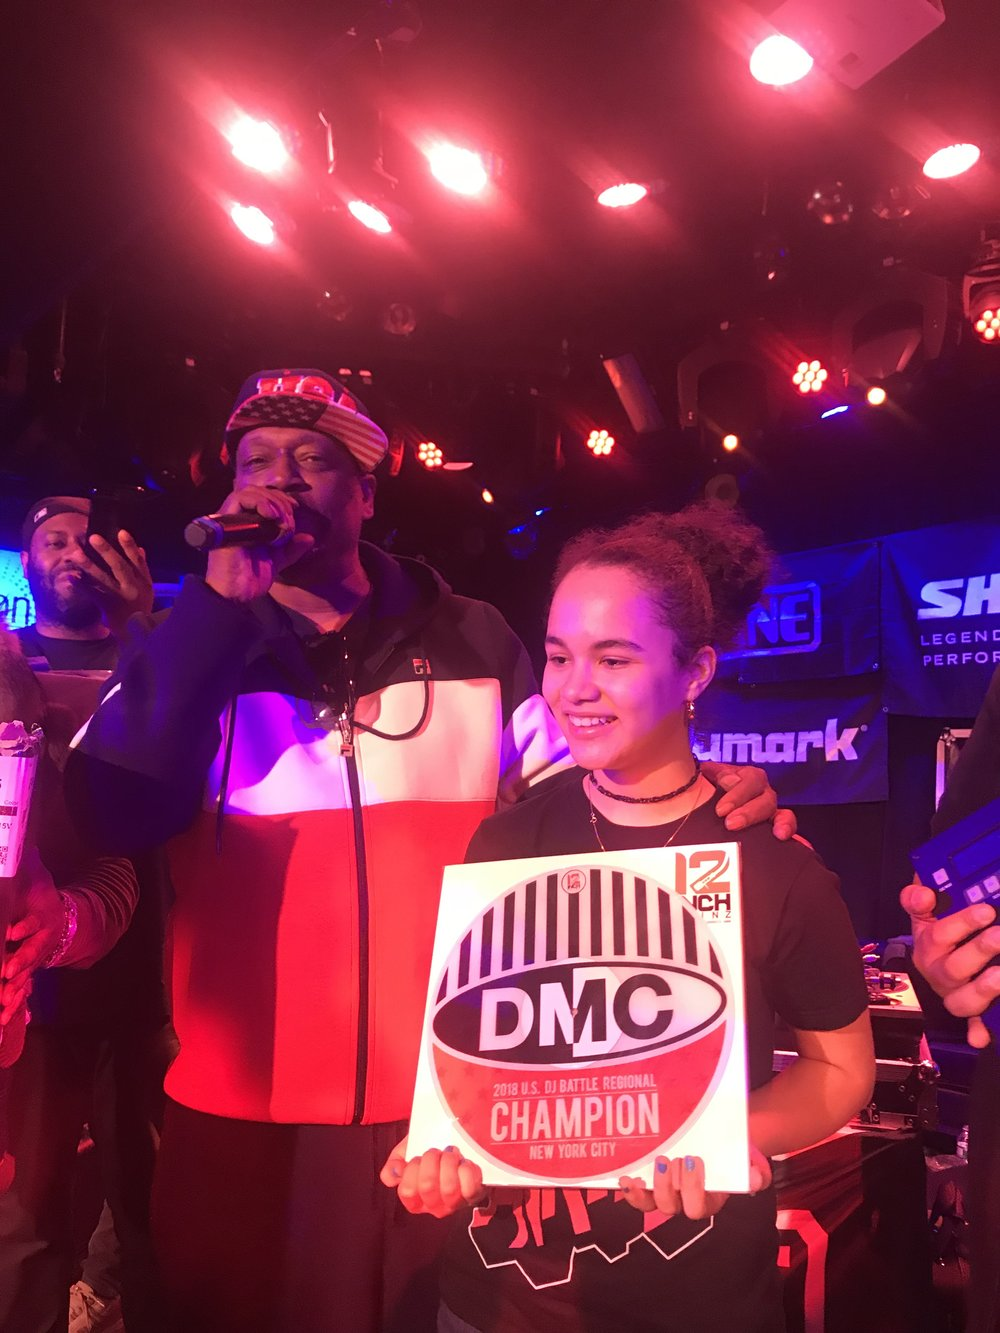 GrandMaster Caz announces Kool Flash DMC NYC Champion 2018.jpg